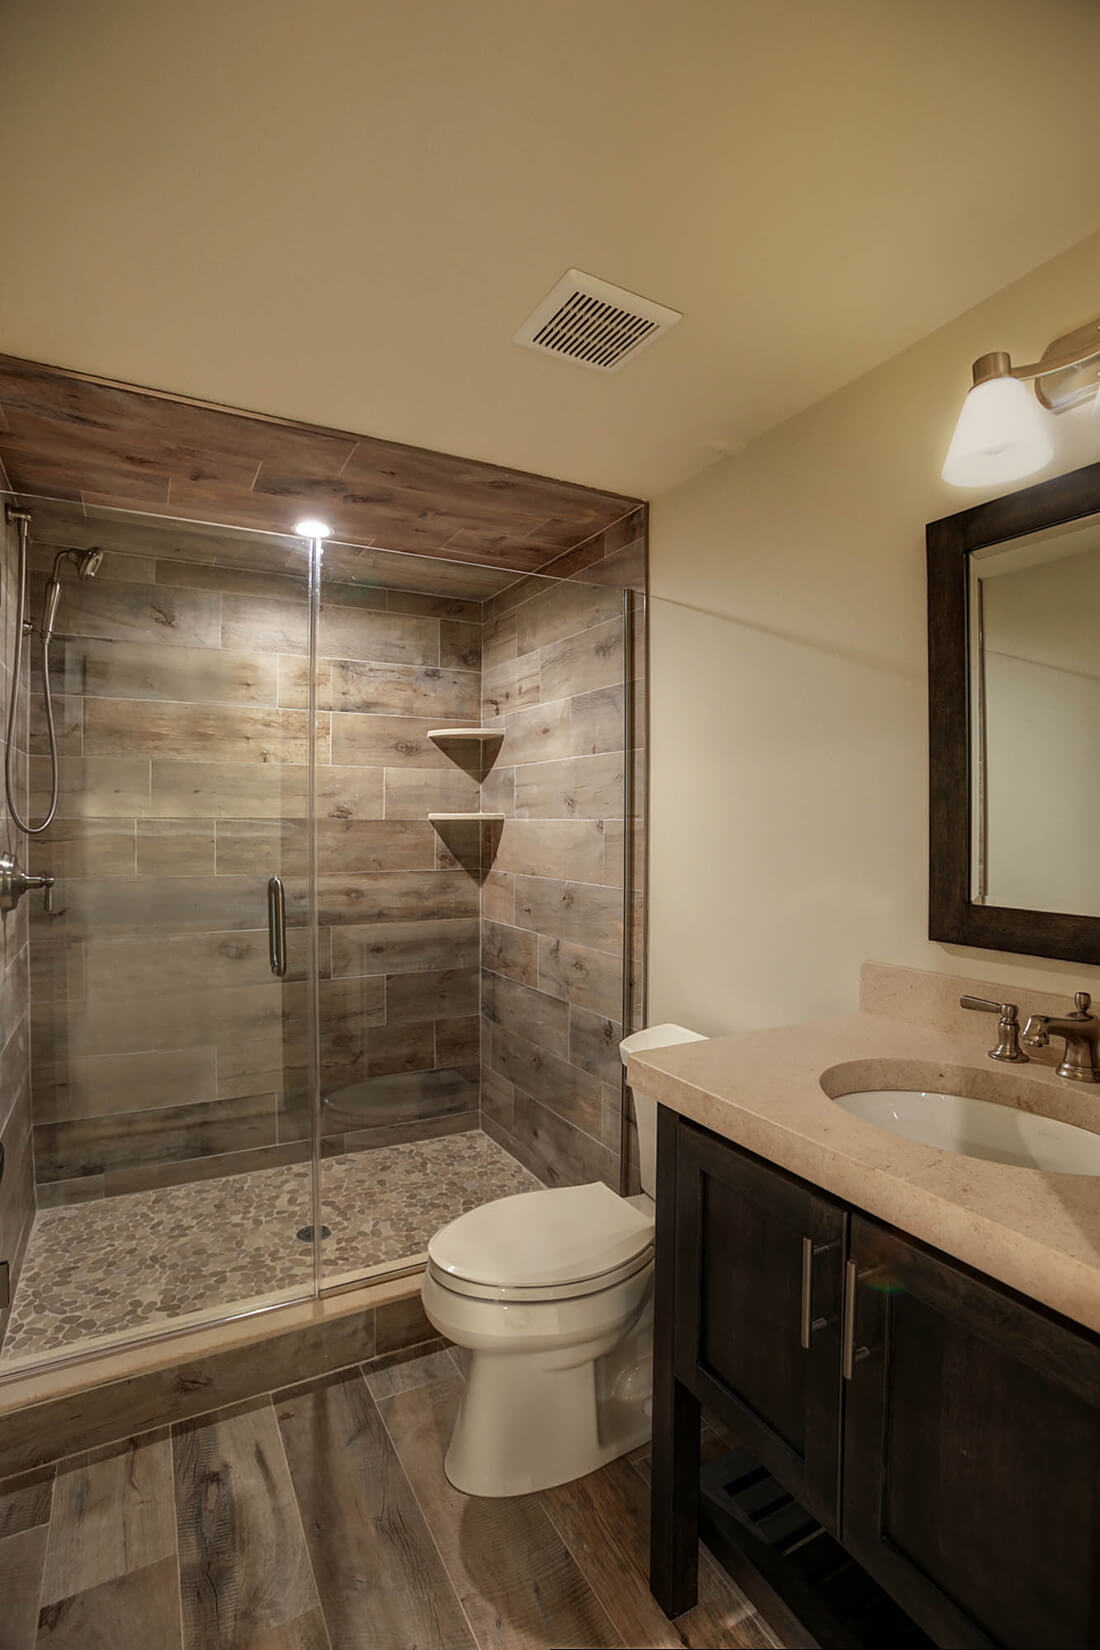 221 Golf Edge Basement Bathroom